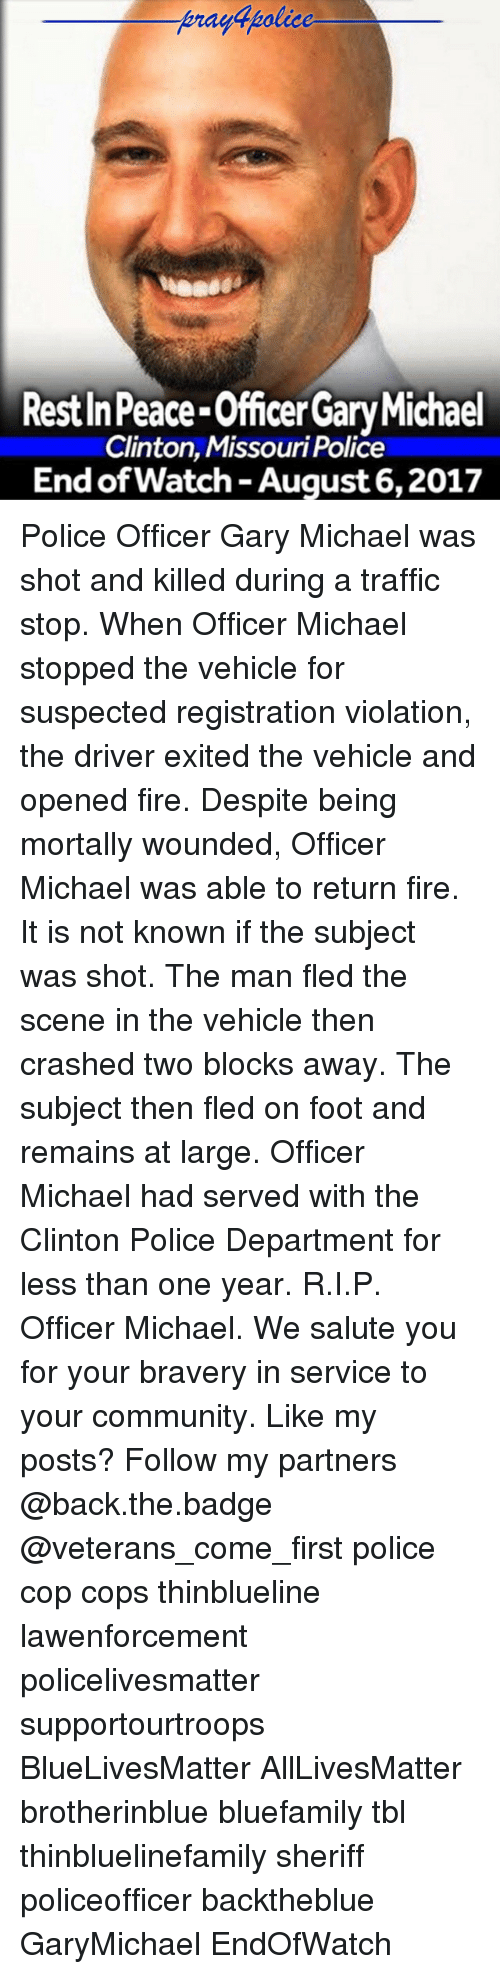 All Lives Matter, Community, and Fire: praydpolice  Rest In Peace-Officer Gary Michael  Clinton, Missouri Police  End of Watch -August 6,2017 Police Officer Gary Michael was shot and killed during a traffic stop. When Officer Michael stopped the vehicle for suspected registration violation, the driver exited the vehicle and opened fire. Despite being mortally wounded, Officer Michael was able to return fire. It is not known if the subject was shot. The man fled the scene in the vehicle then crashed two blocks away. The subject then fled on foot and remains at large. Officer Michael had served with the Clinton Police Department for less than one year. R.I.P. Officer Michael. We salute you for your bravery in service to your community. Like my posts? Follow my partners @back.the.badge @veterans_сome_first police cop cops thinblueline lawenforcement policelivesmatter supportourtroops BlueLivesMatter AllLivesMatter brotherinblue bluefamily tbl thinbluelinefamily sheriff policeofficer backtheblue GaryMichael EndOfWatch